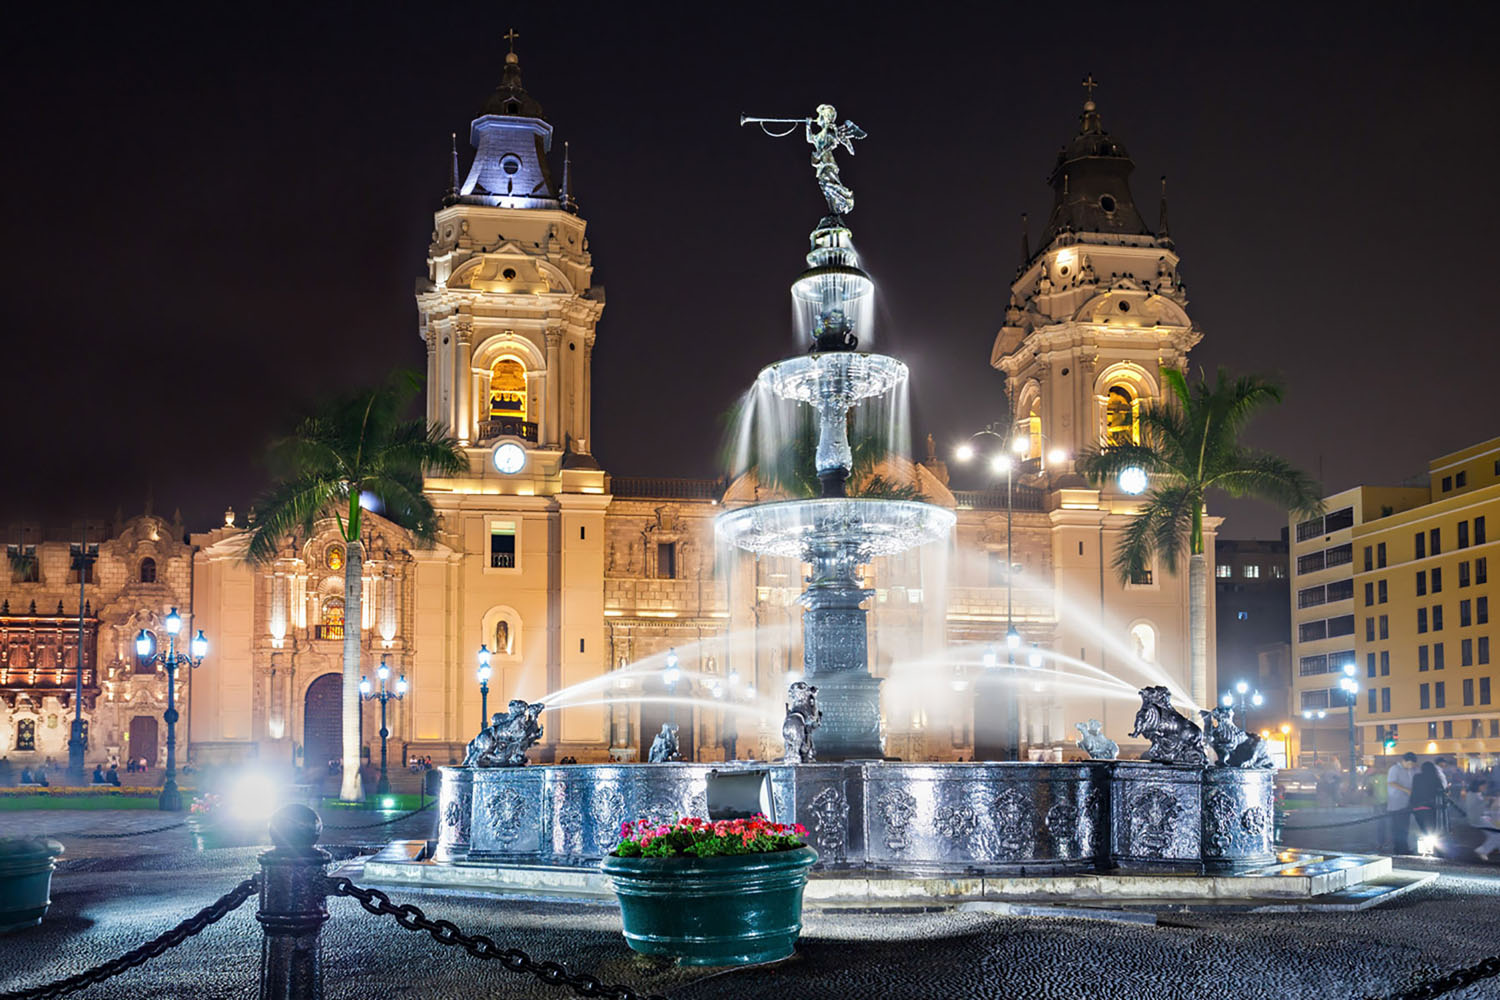 The Basilica Cathedral of Lima at night,